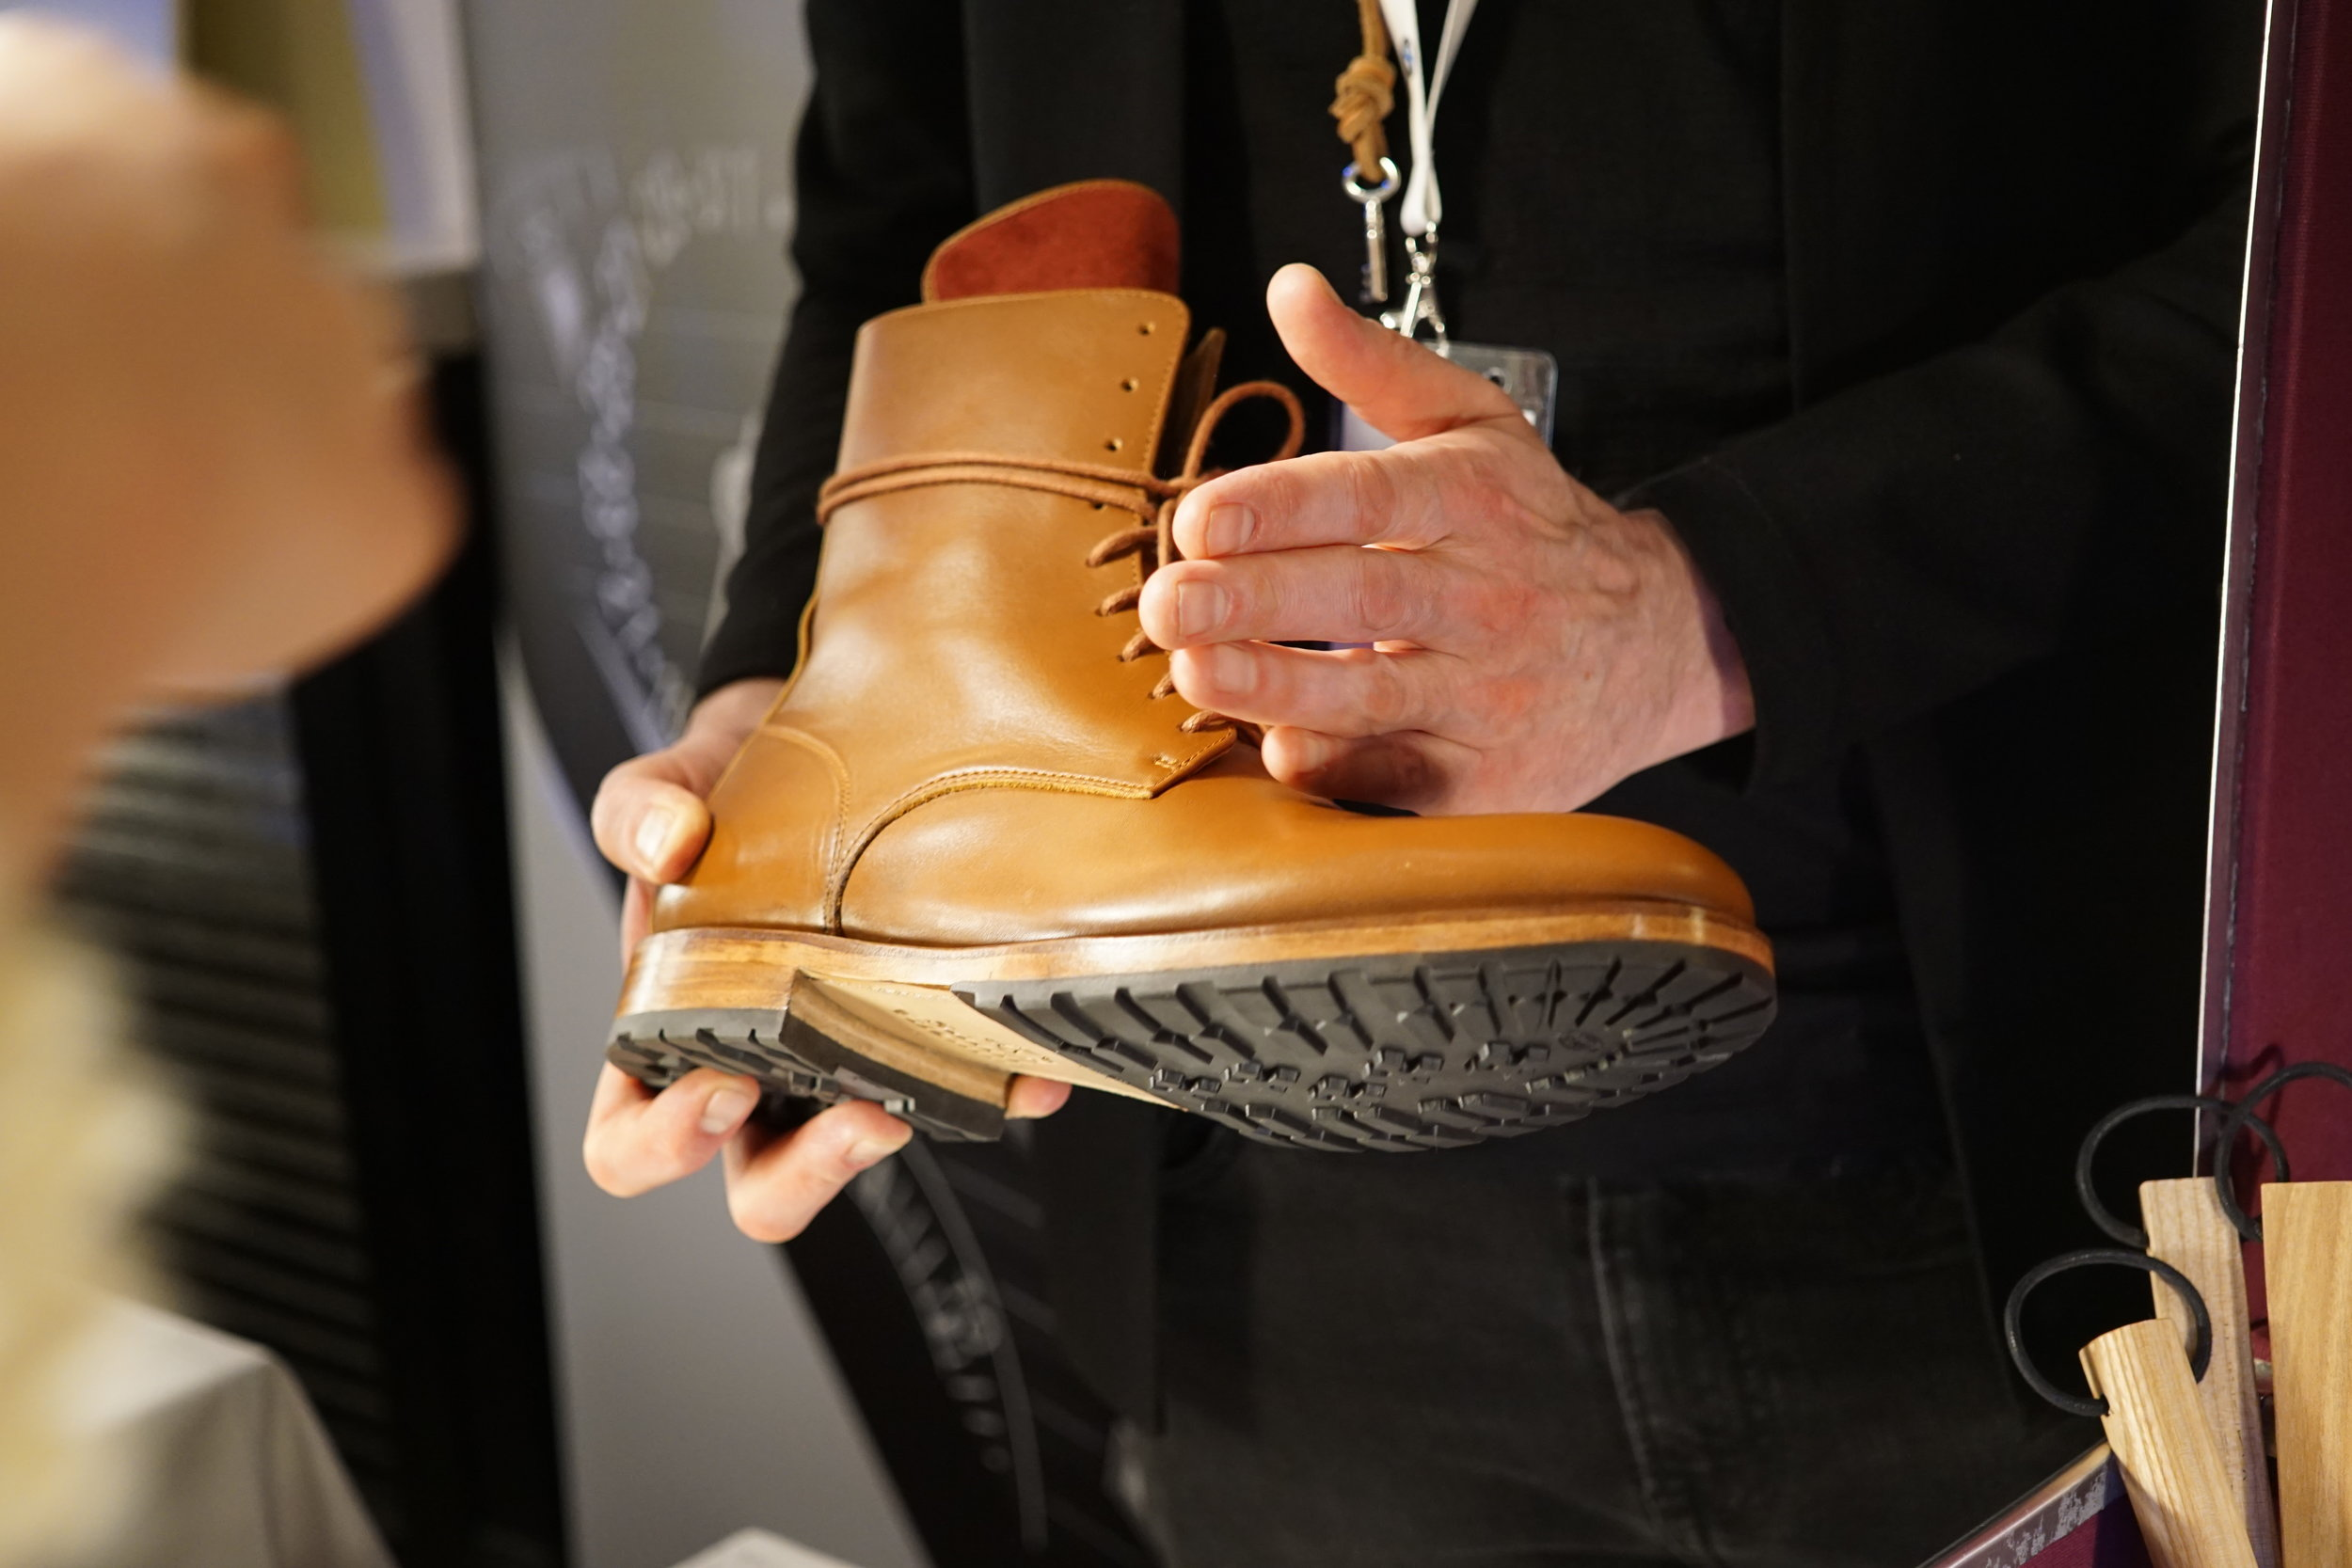 Not everything at the event was about watches. Saint Vacant was also present, showcasing their beautiful shoes.